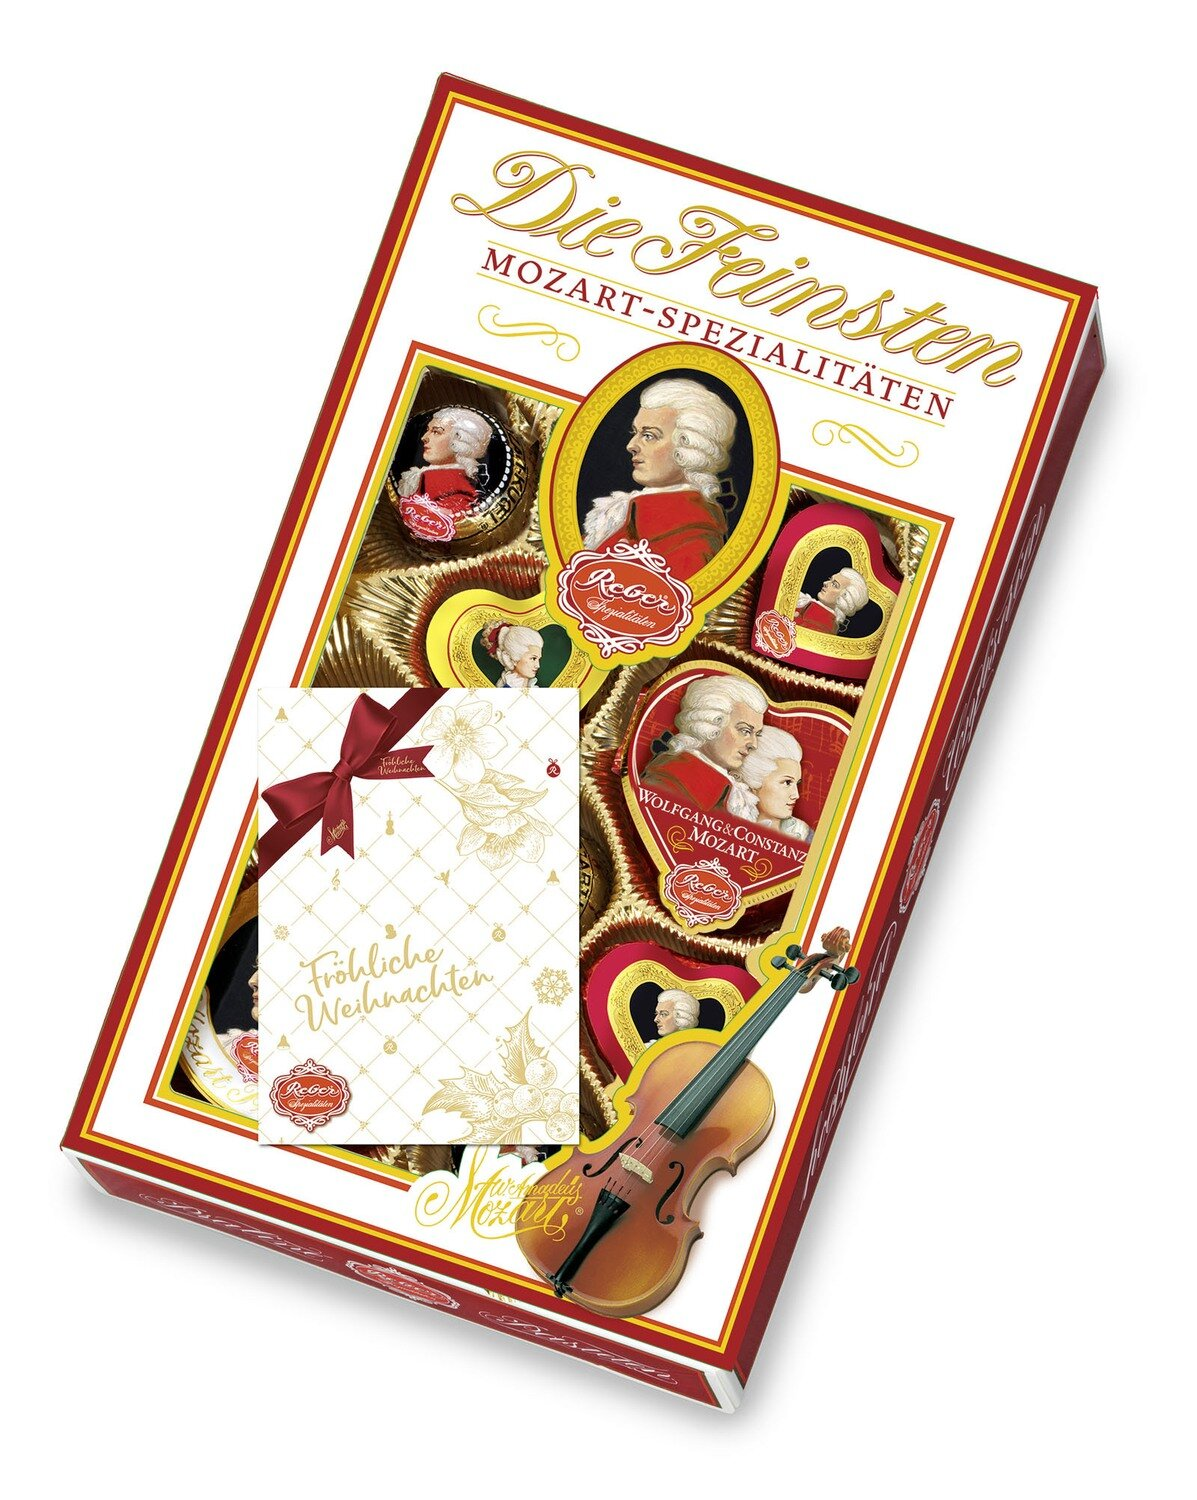 Reber Marzipan Mozart Specialty Box